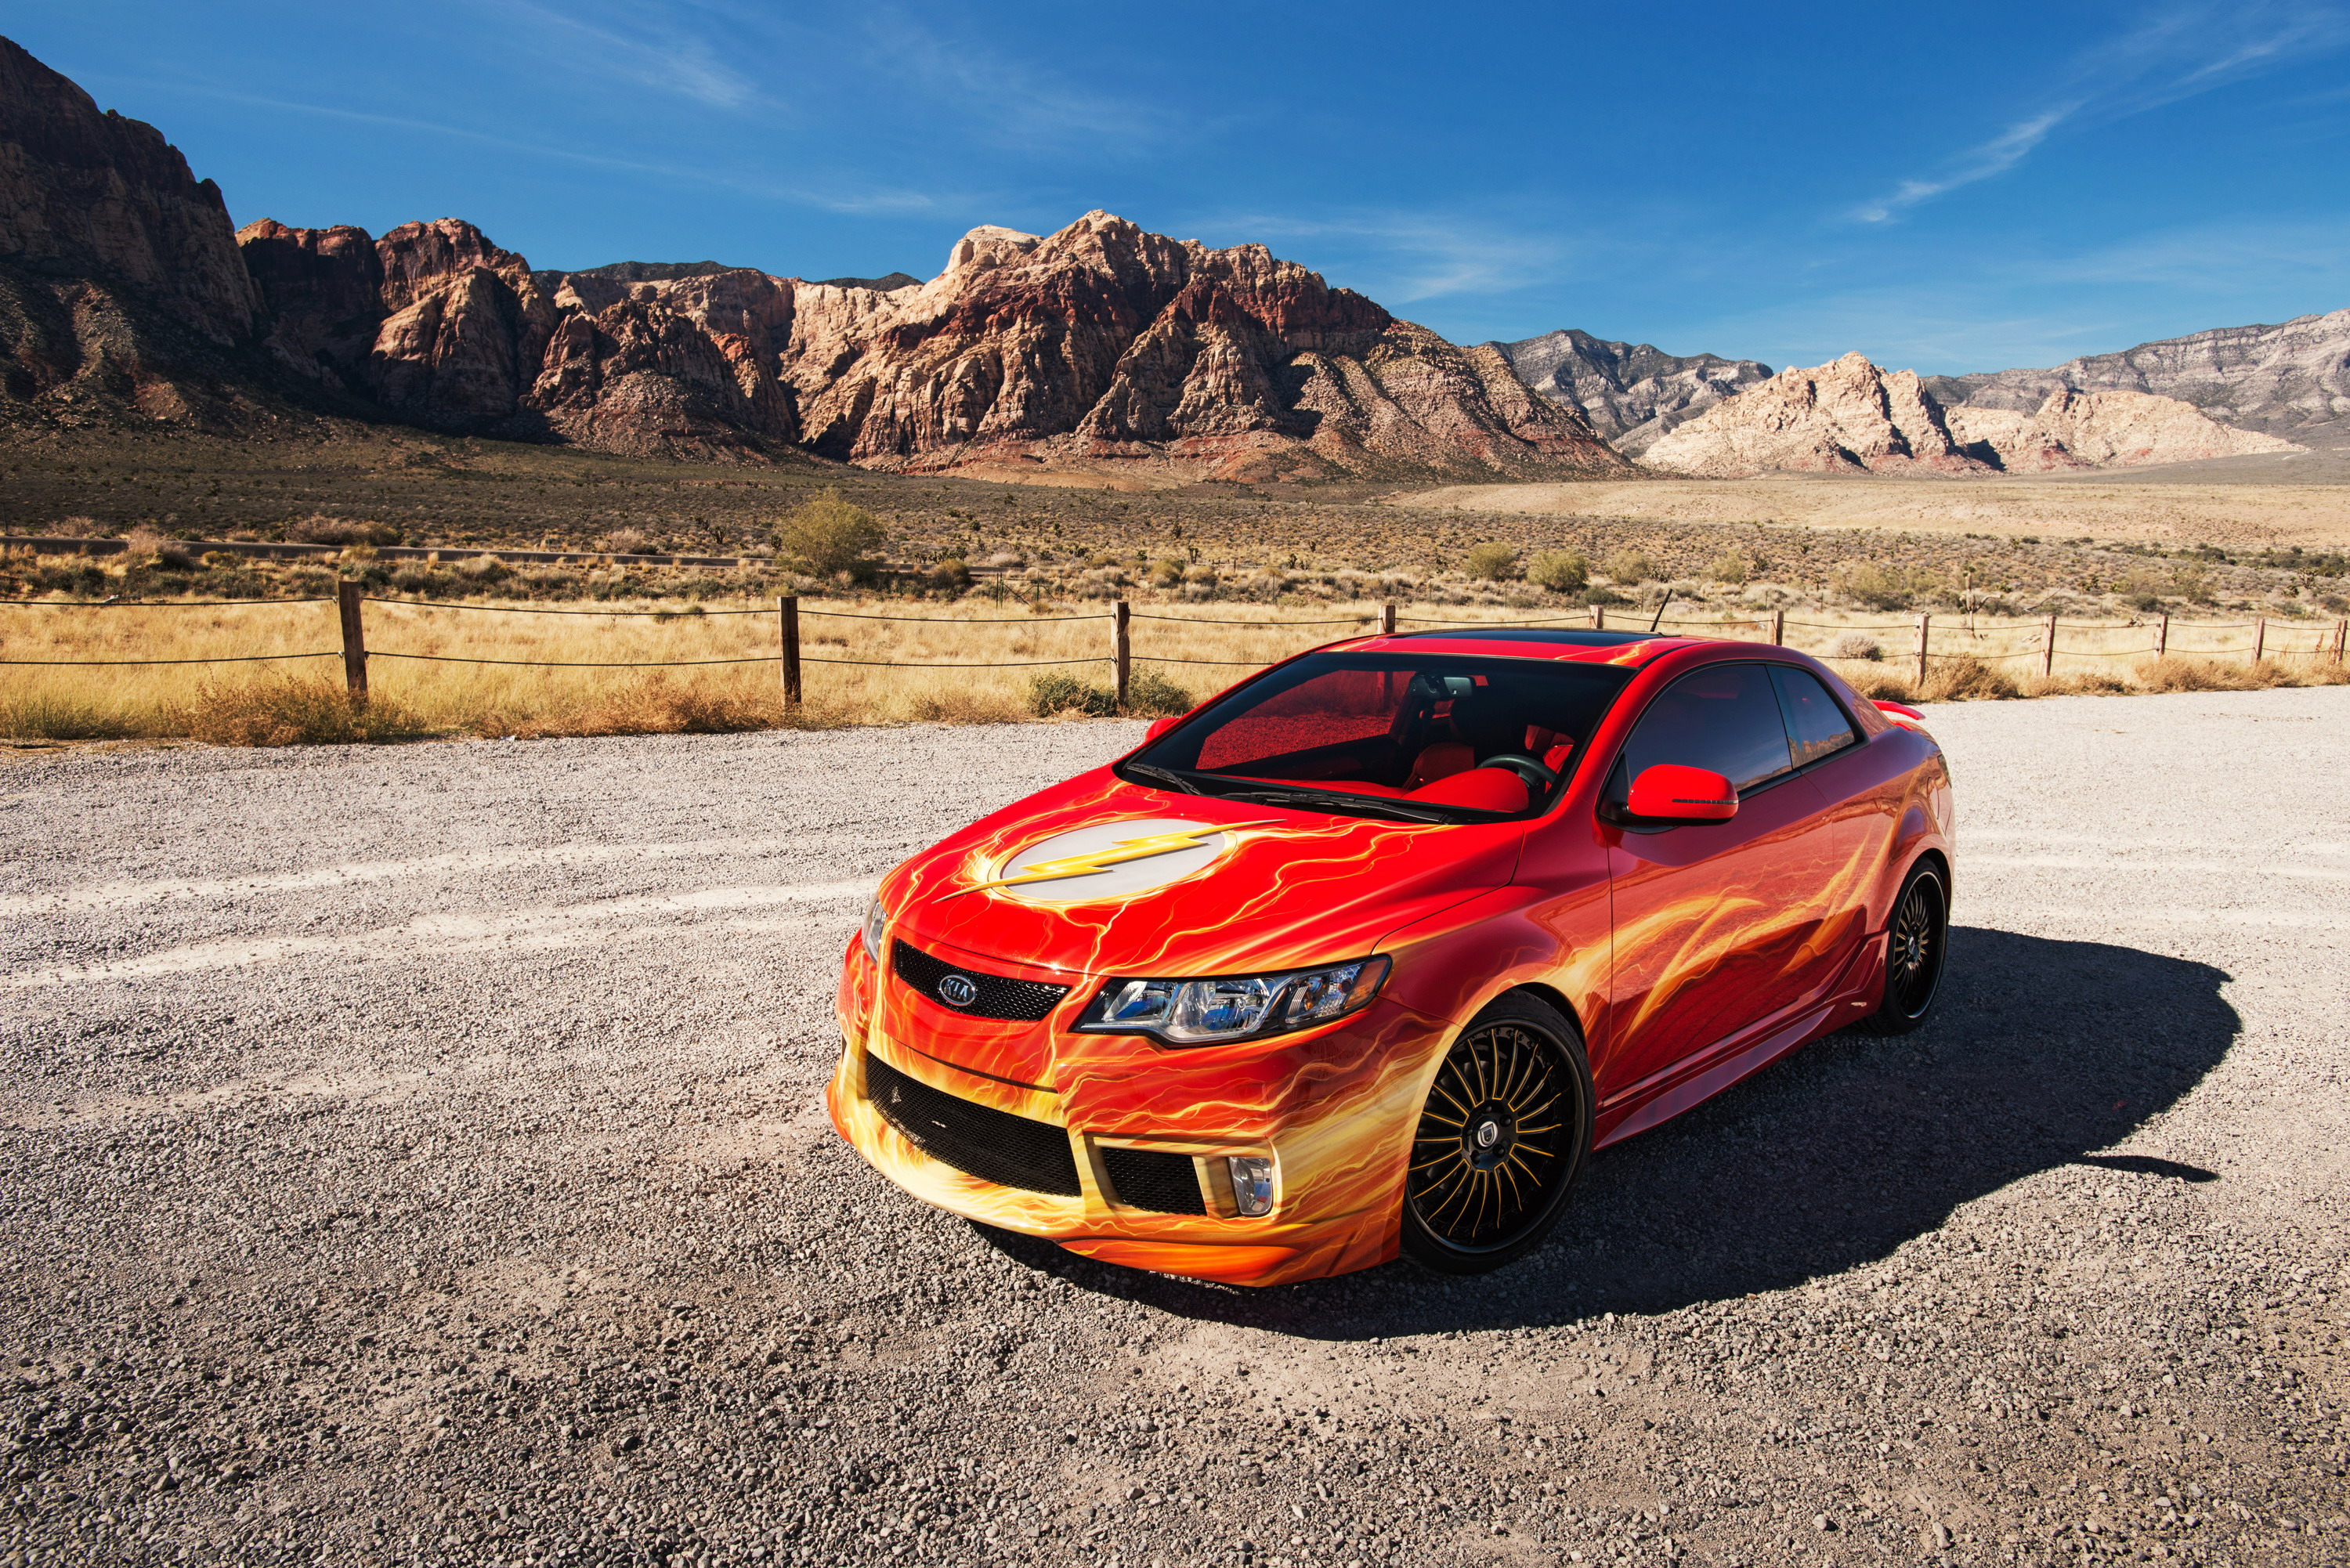 2012 Kia Forte Koup Flash By West Coast Customs Review Top Speed